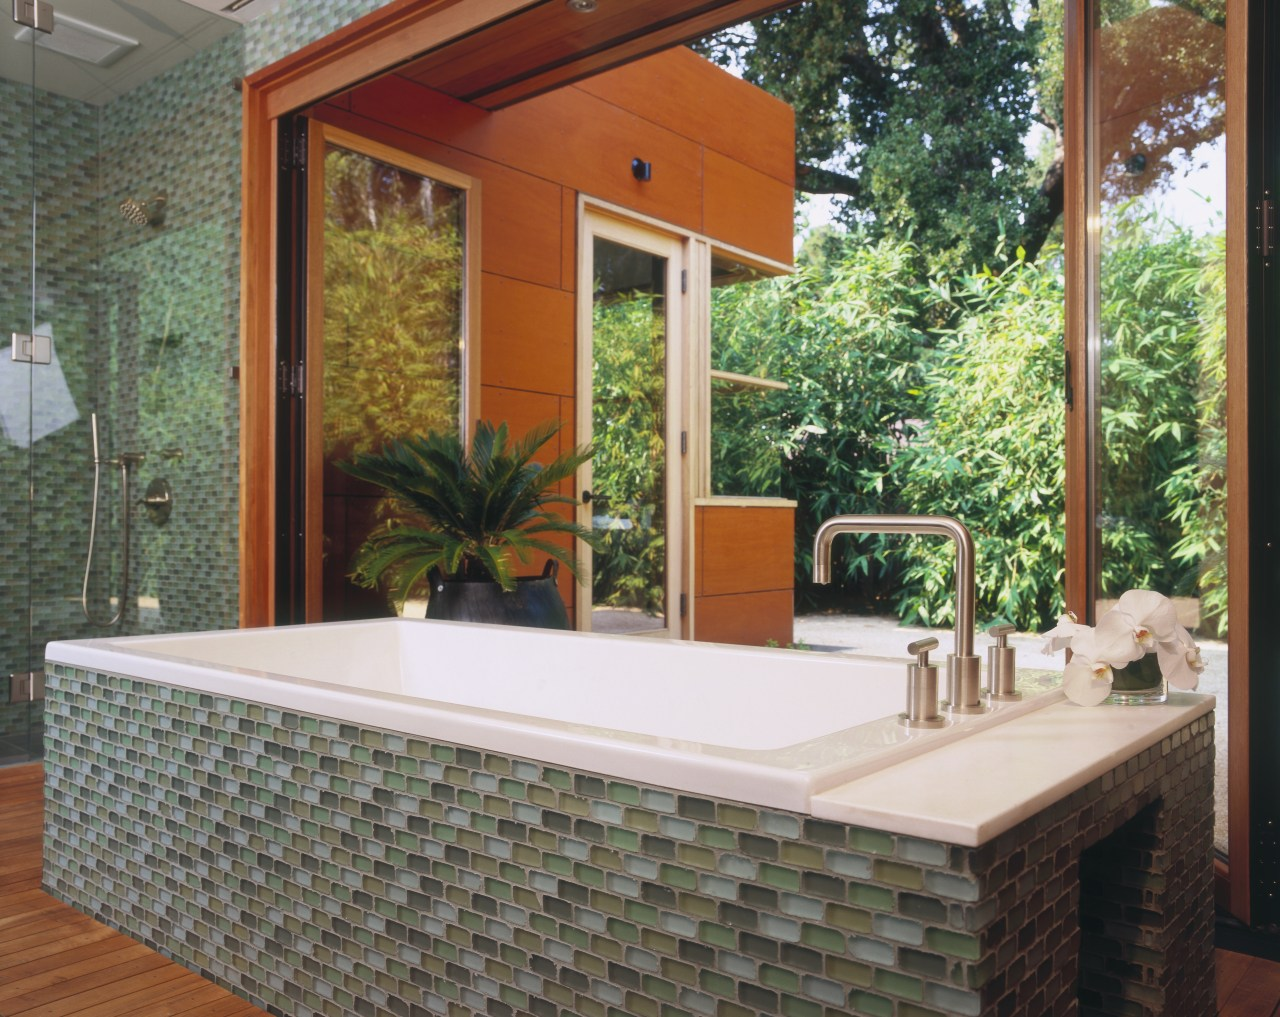 Image of a bathroom with colours that mimic backyard, estate, home, house, interior design, outdoor structure, porch, property, real estate, window